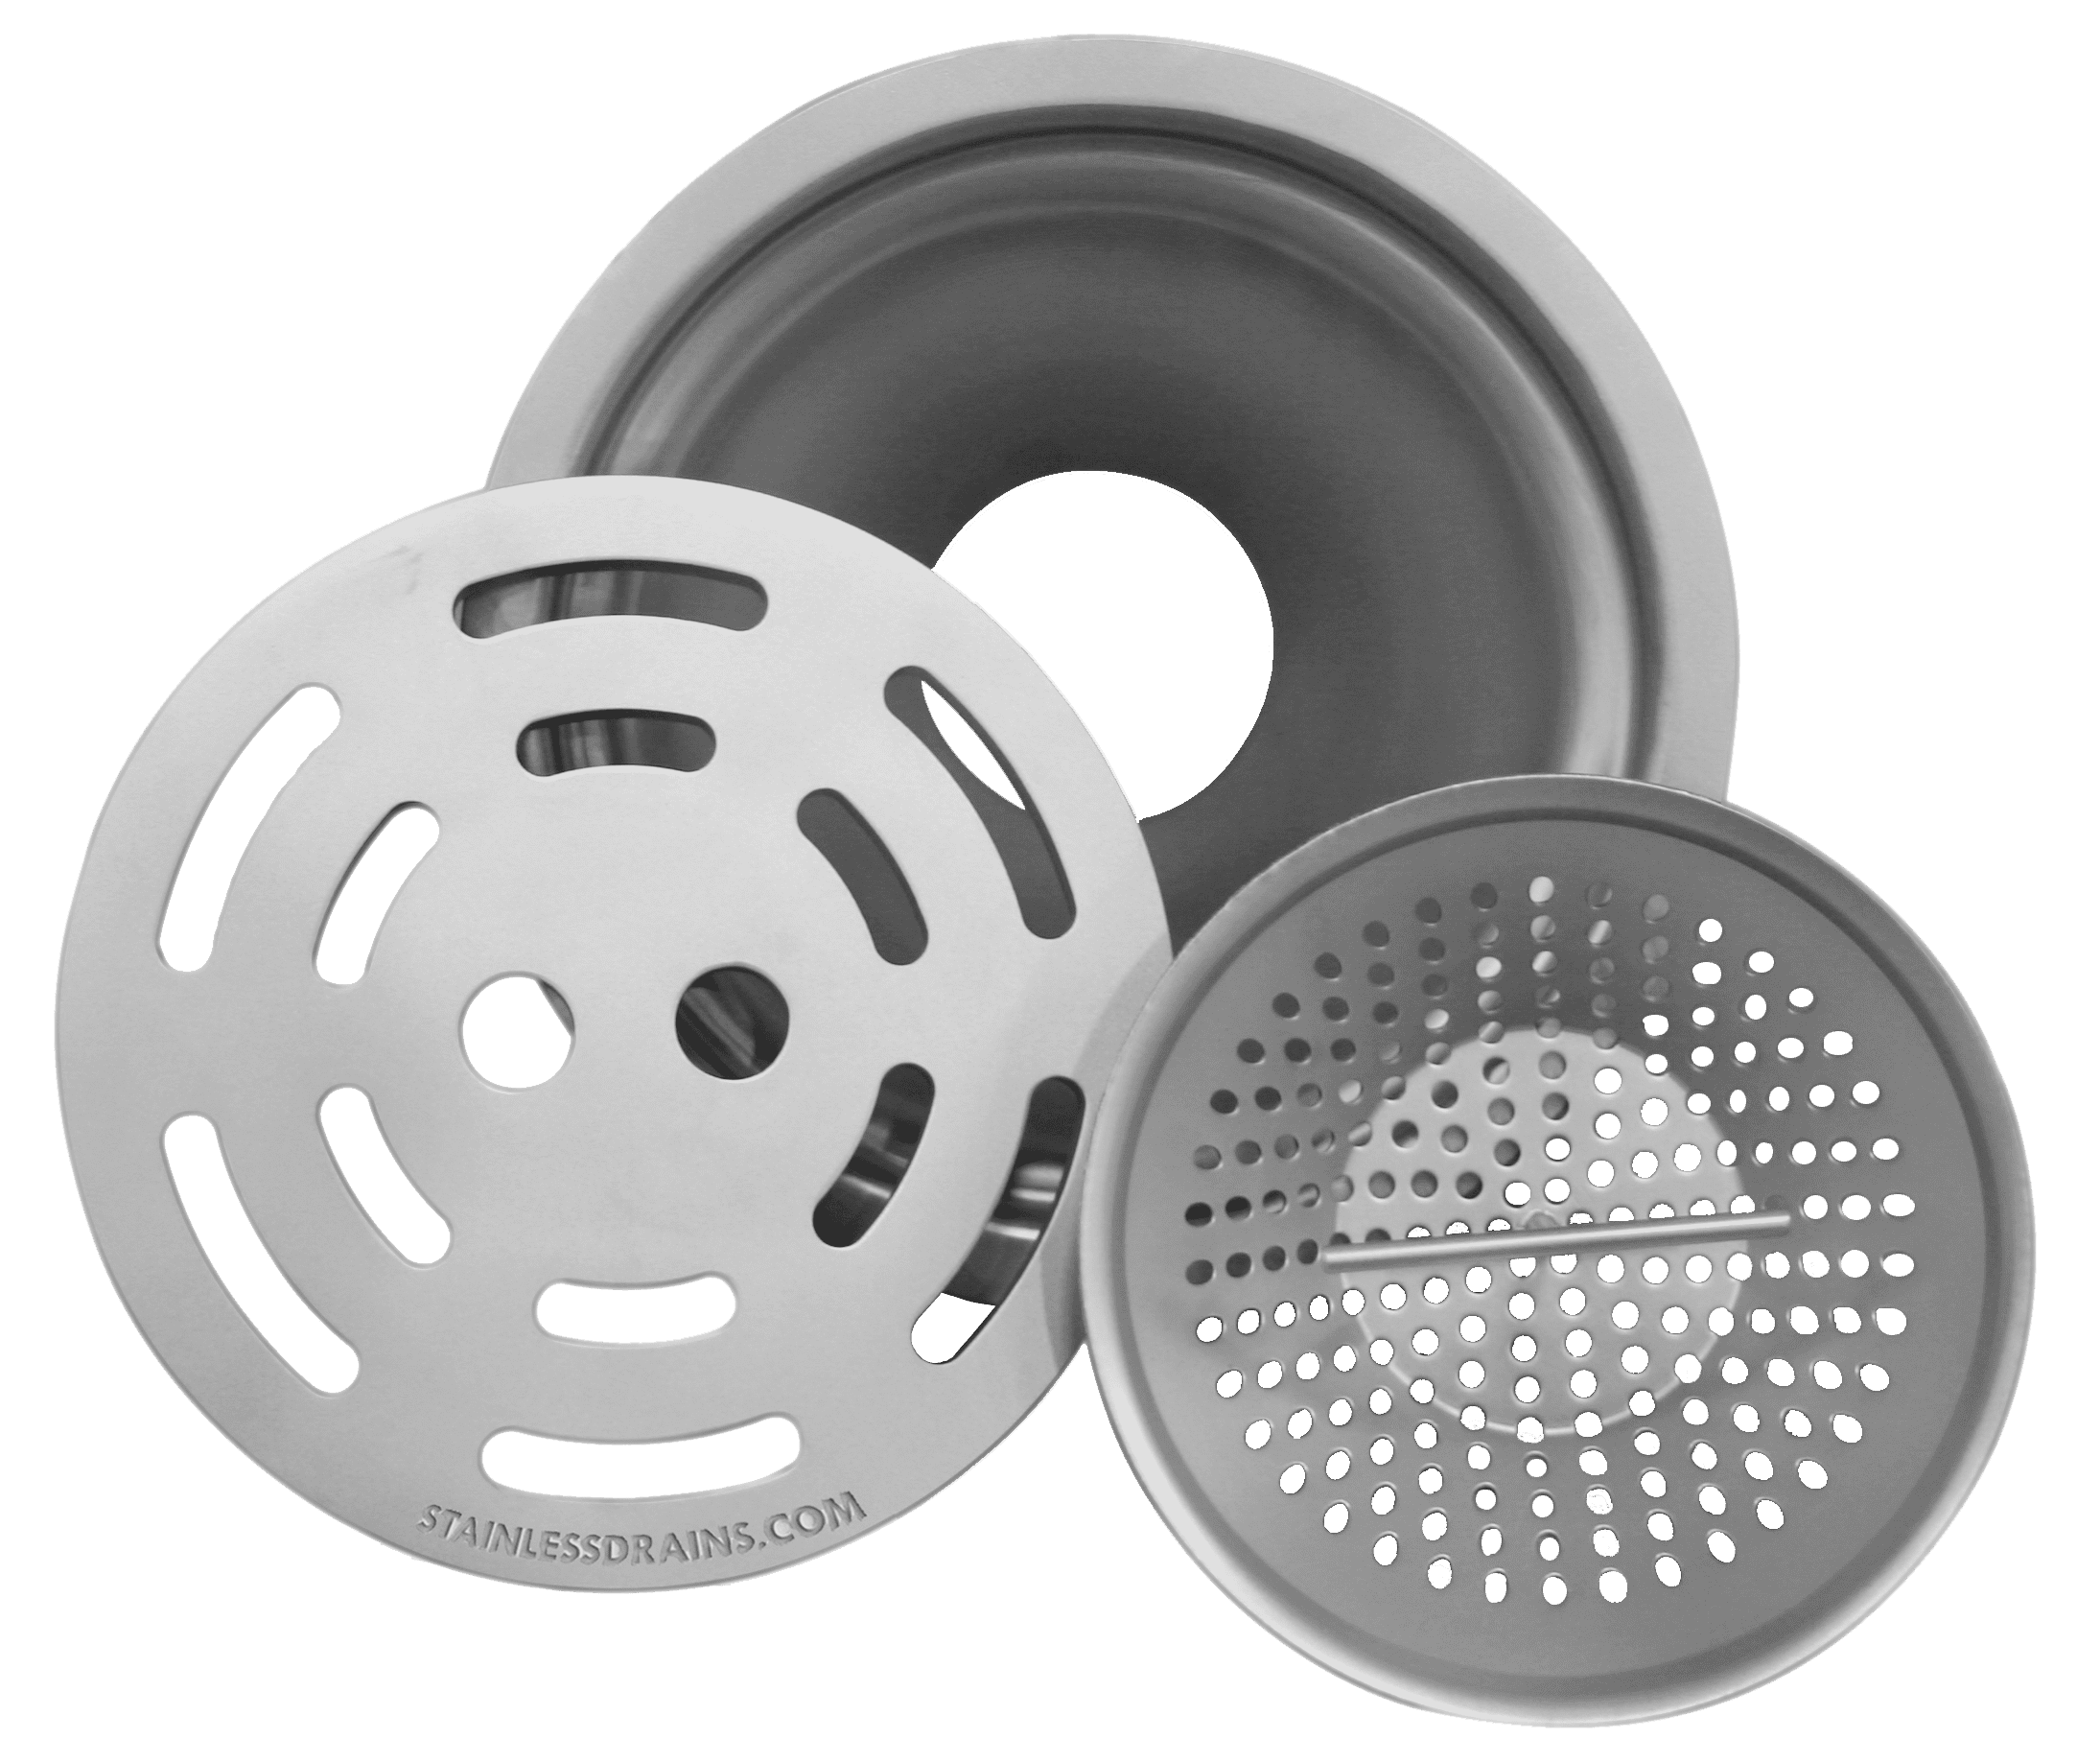 We've CRAFTED a solution: Sanitary Stainless Steel Drains